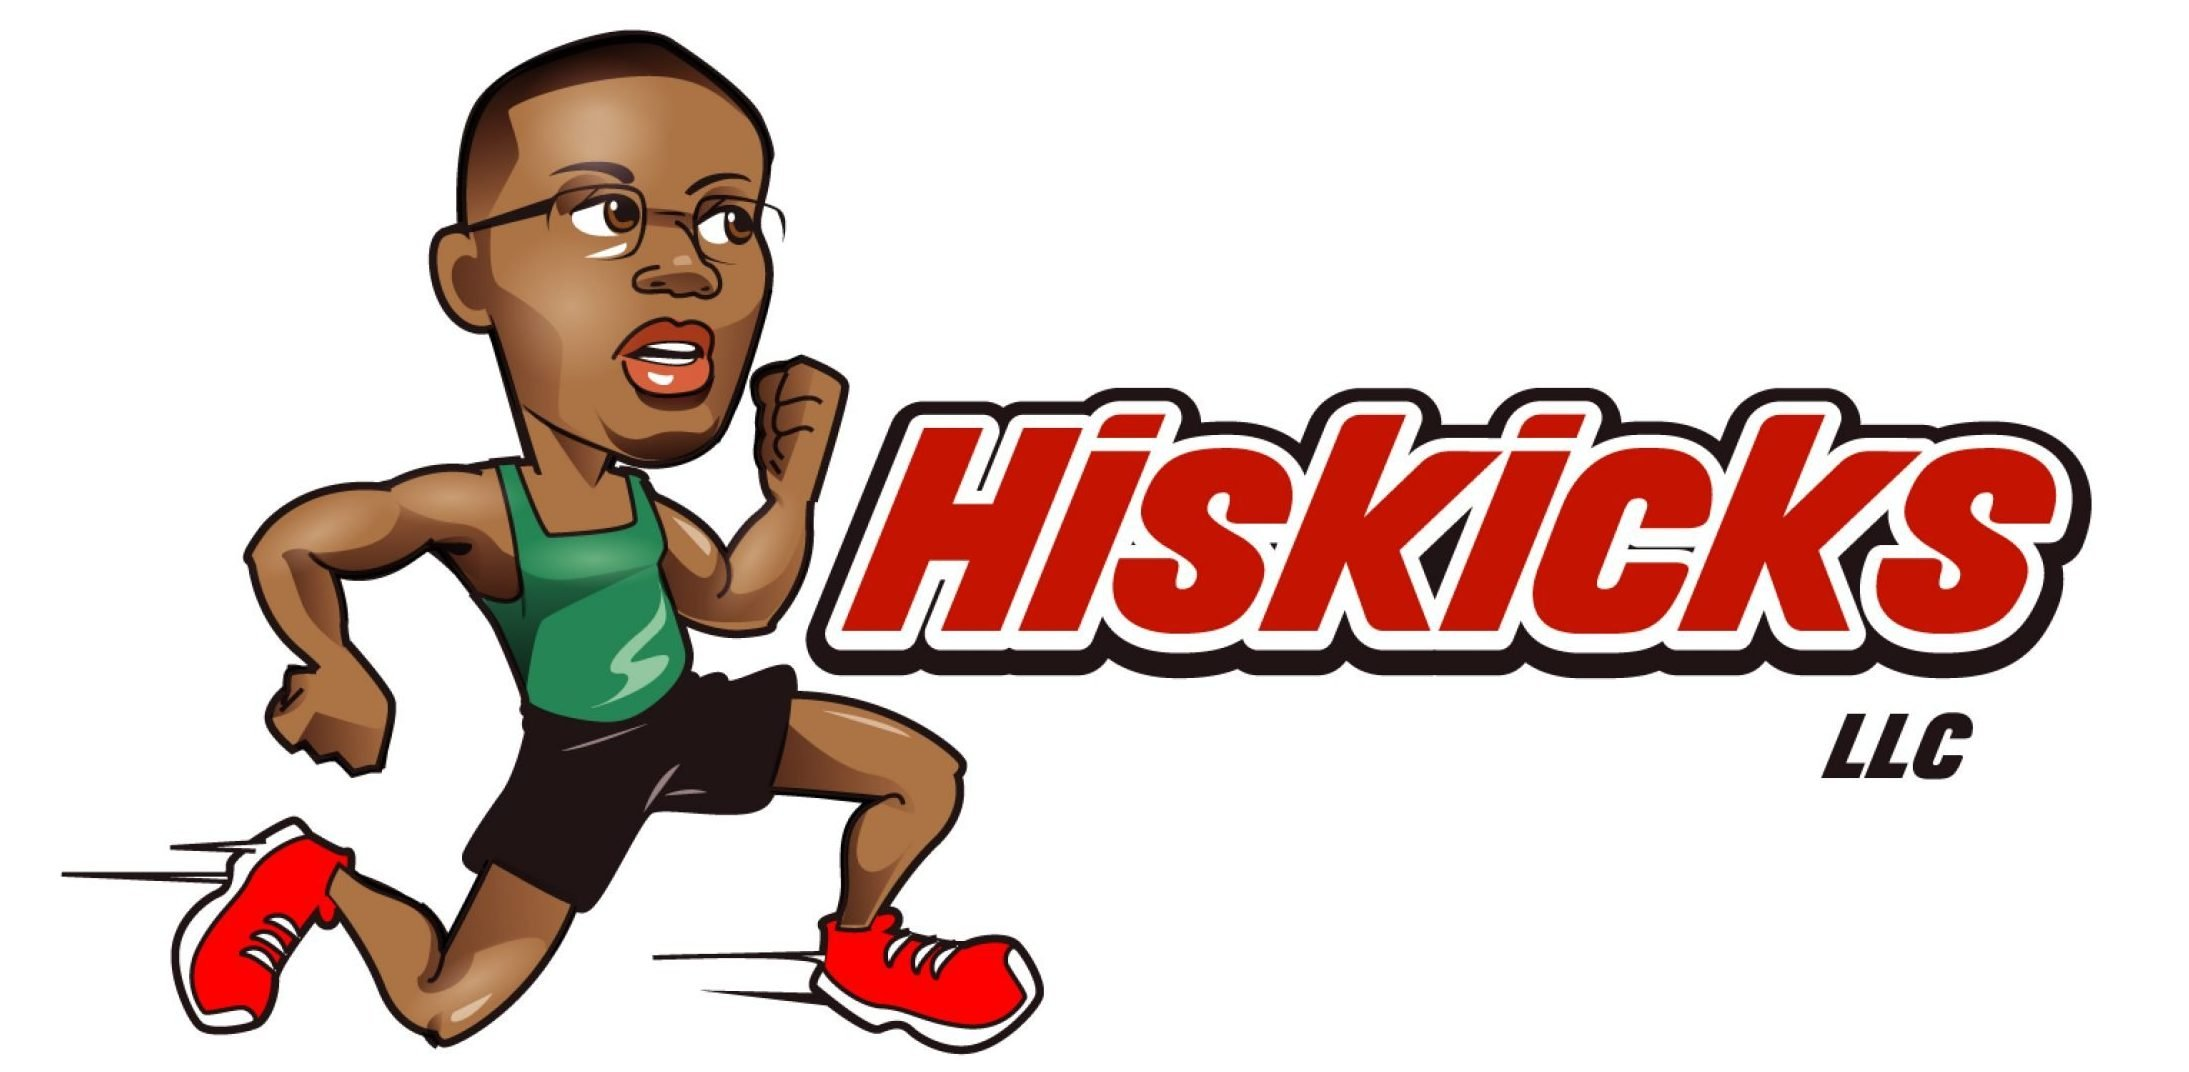 Hiskicks LLC